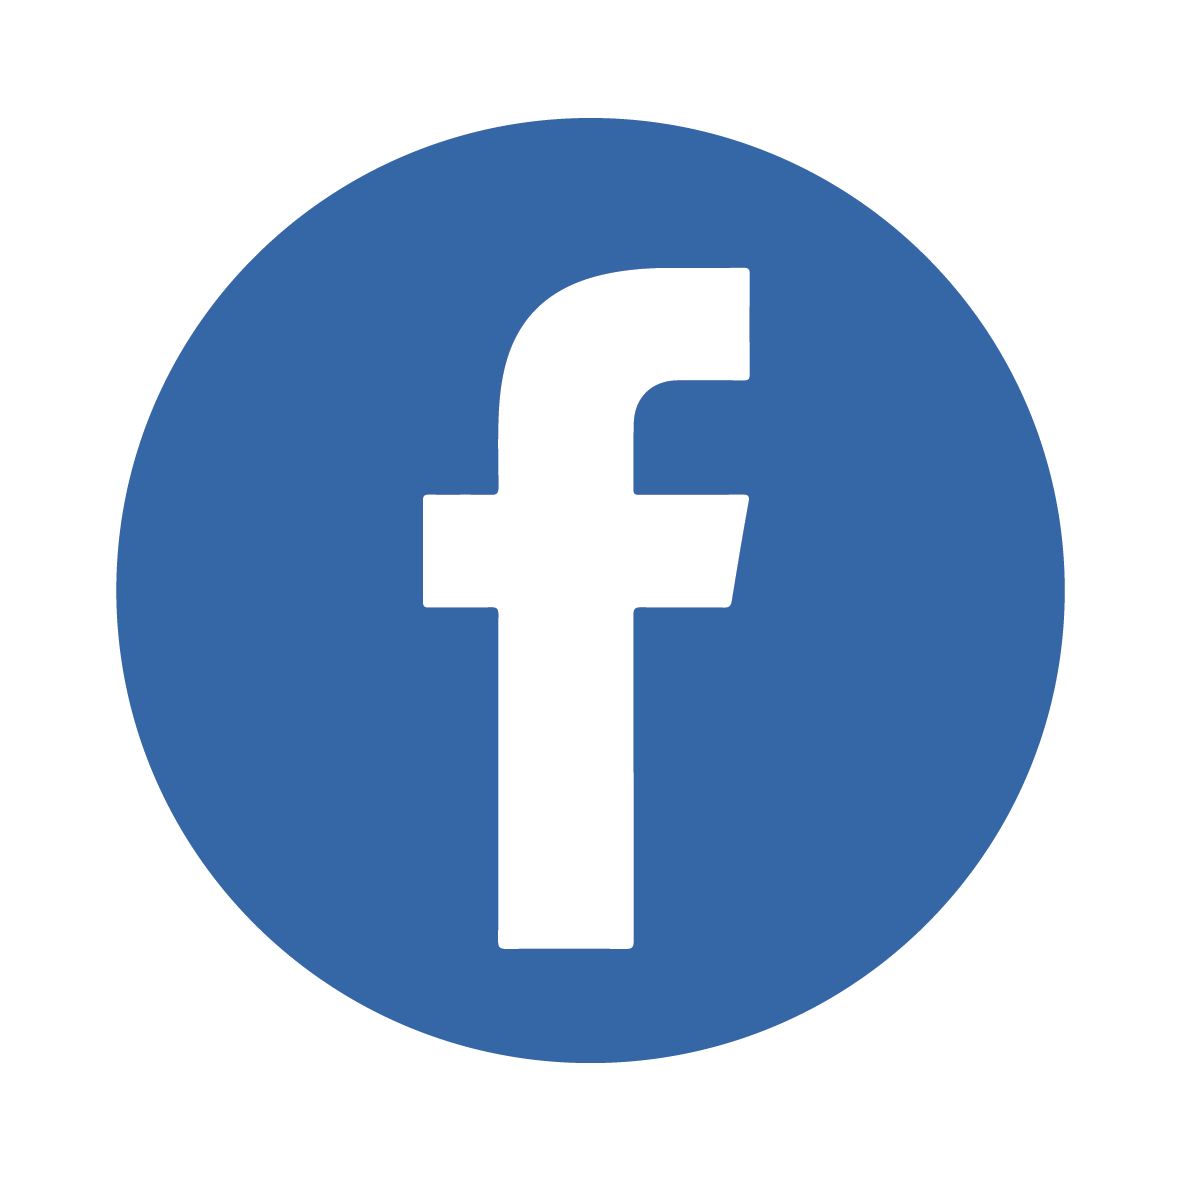 Very Small Facebook Logo - Free Small Facebook Icon Png 67152 | Download Small Facebook Icon ...